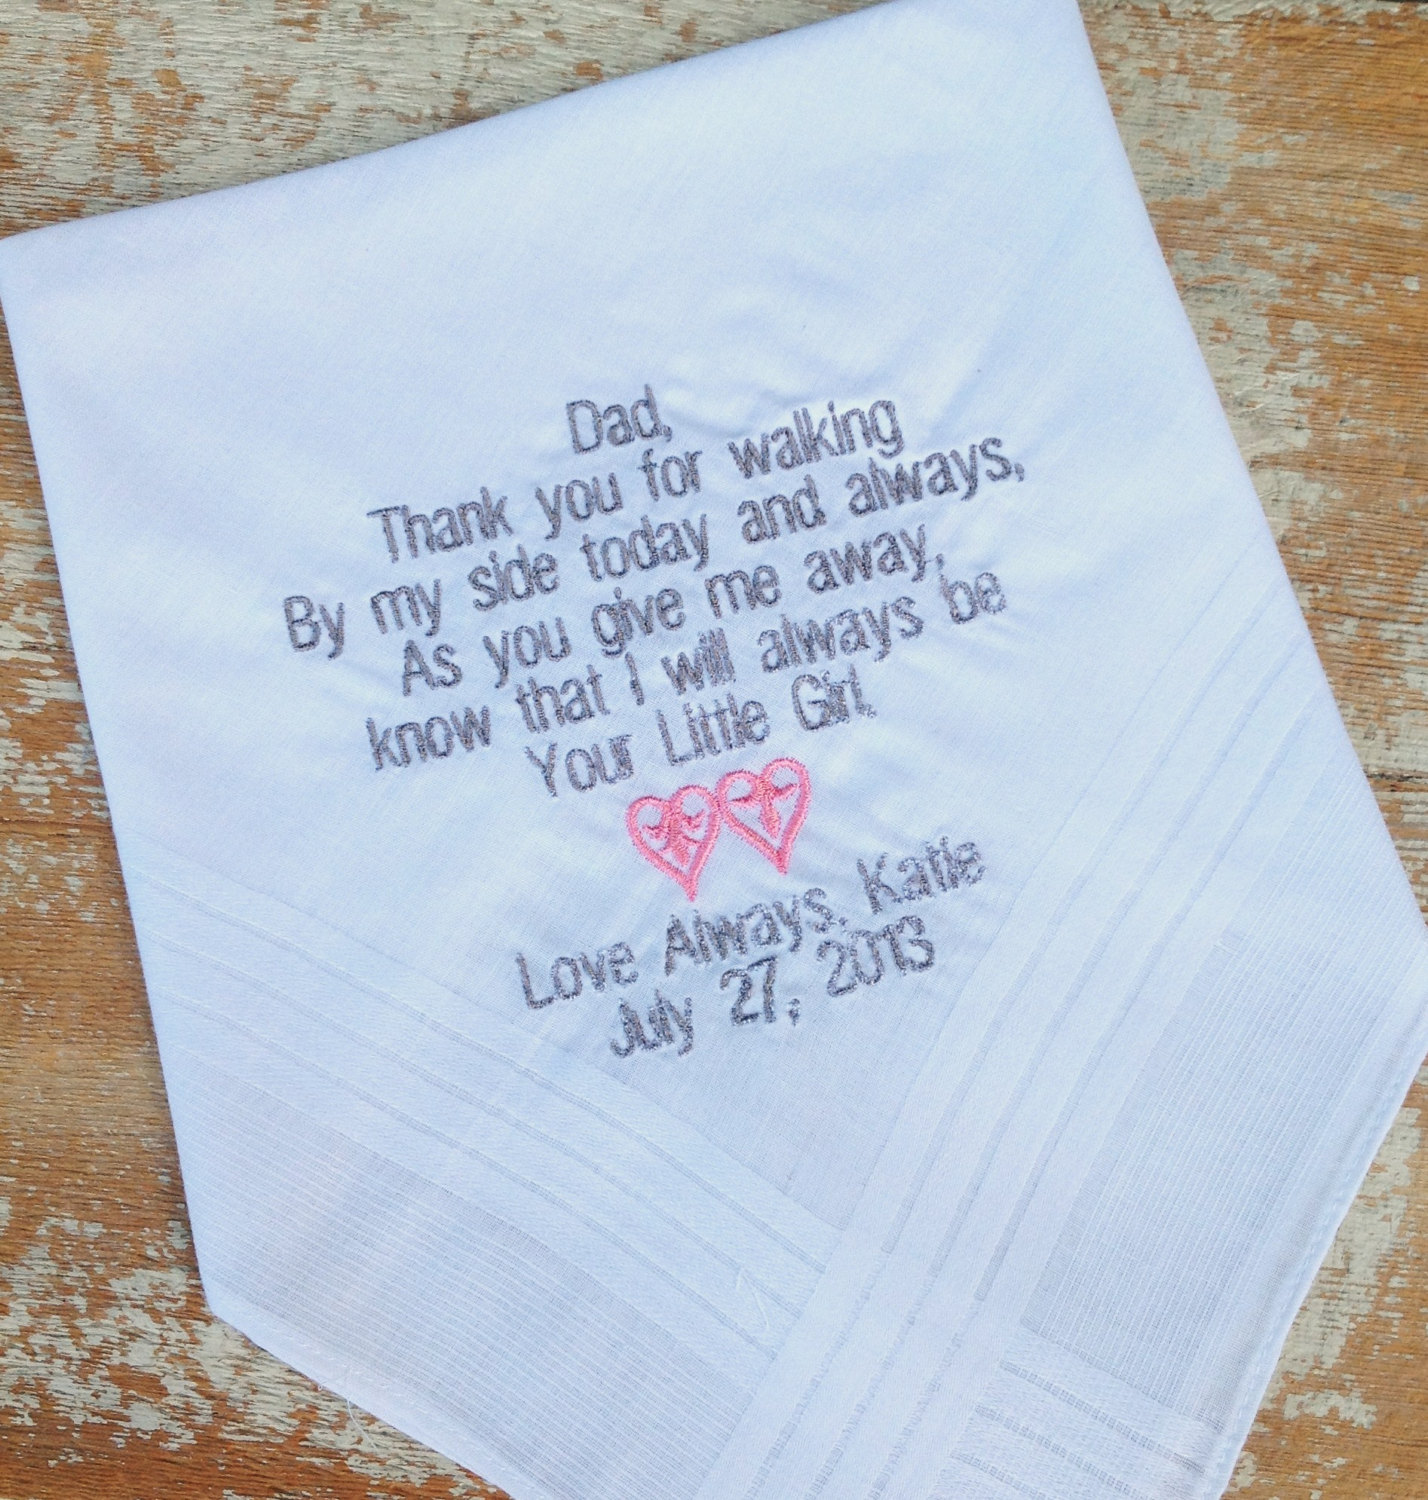 embroidered handkerchiefs wedding dad from bride wedding heirloom handkerchief custom embroidered personalized hankie gift embroidery father daddy from heirloom handkerchief custom embroidered